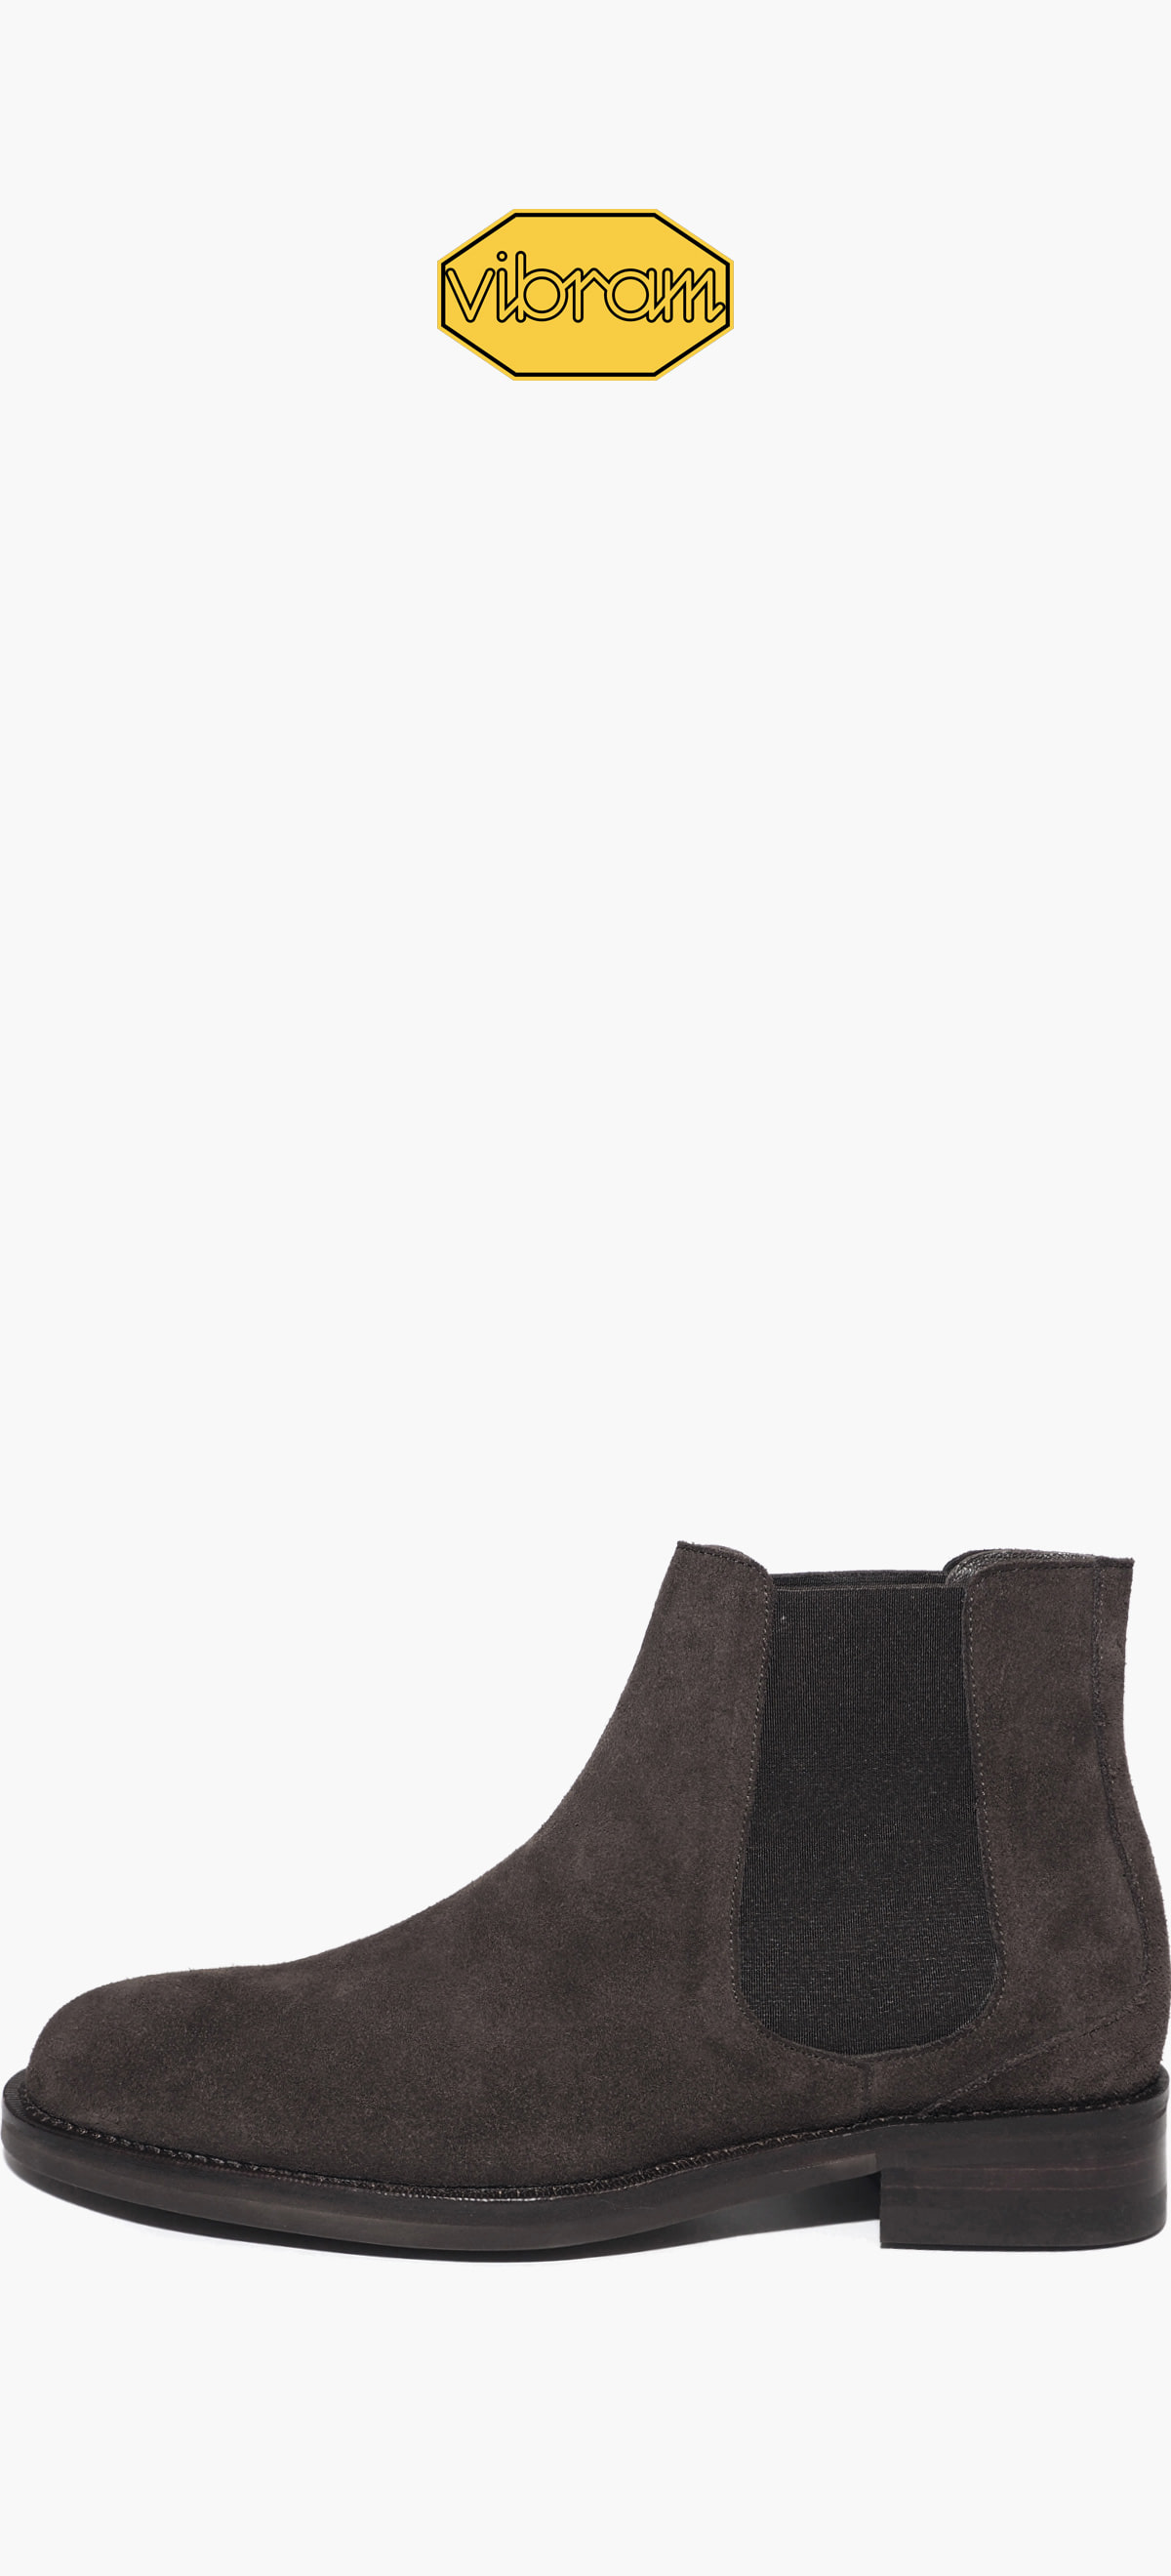 Chelsea Boots 9003-09 Deep Brown Suede 20%Sale